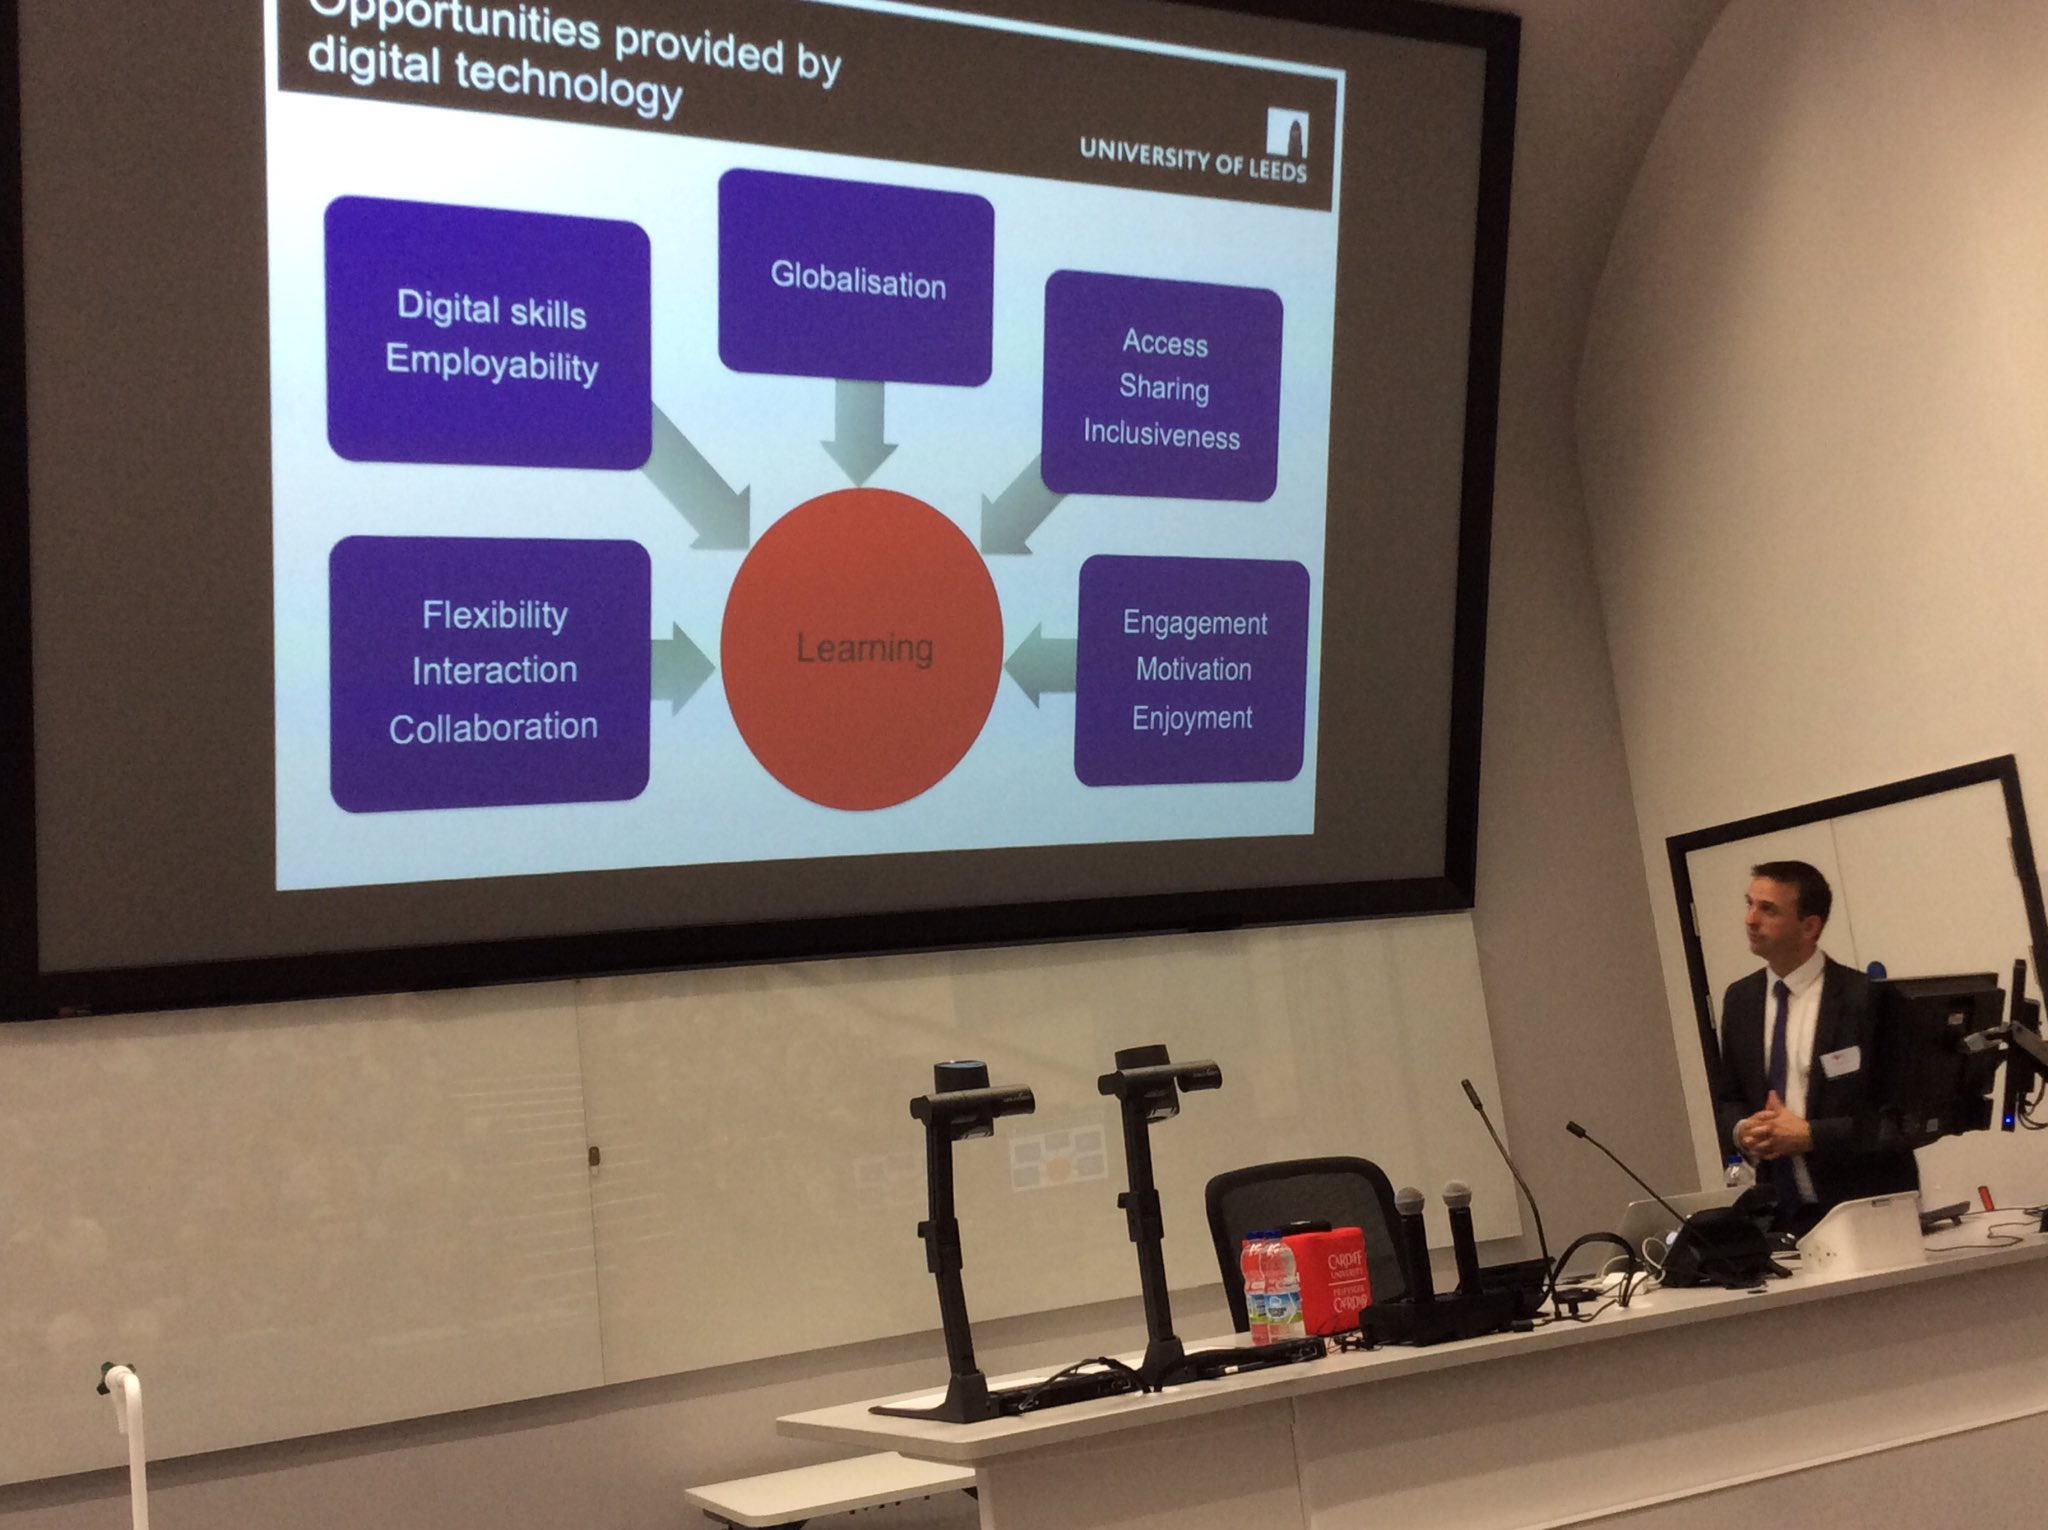 Professor Neil Morris emphasising that learning has to be at the heart of digital technology #CUCEI17 @cardiffuni l & t conference https://t.co/HzUbkEQCnh